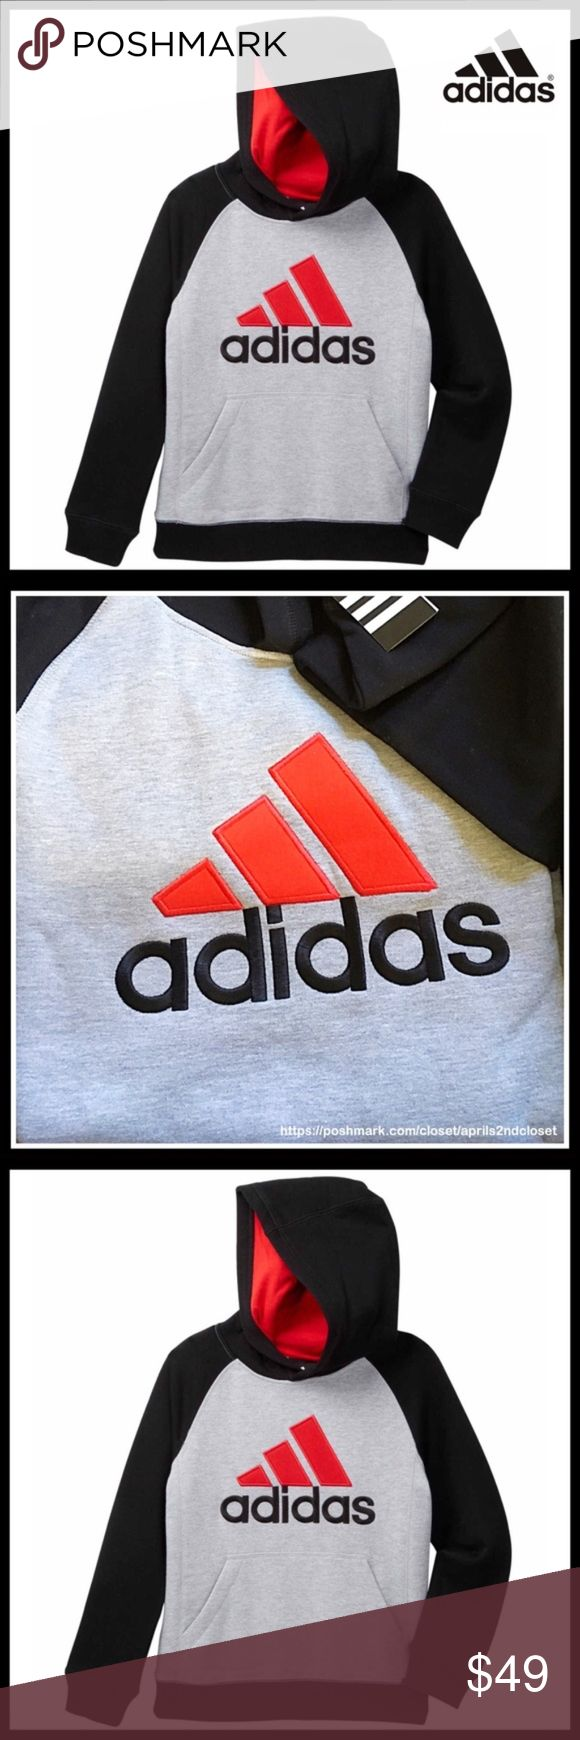 ⭐️⭐️ ADIDAS PULLOVER Tech Fleece Hoodie NEW WITH TAGS  SIZING- BiG Boys L = sizes 14-16, XL = 18-20  ADIDAS PULLOVER Tech Fleece Hoodie * Super soft & comfy * Attached hoodie w/logo detail * Contrast long sleeves * Long sleeves w/banded cuffs * Front kangaroo pocket * Pullover style  Material: 100% polyester Color: Black, grey Item#  No Trades ✅ Offers Considered*✅ *Please use the blue 'offer' button to submit an offer. adidas Shirts & Tops Sweatshirts & Hoodies